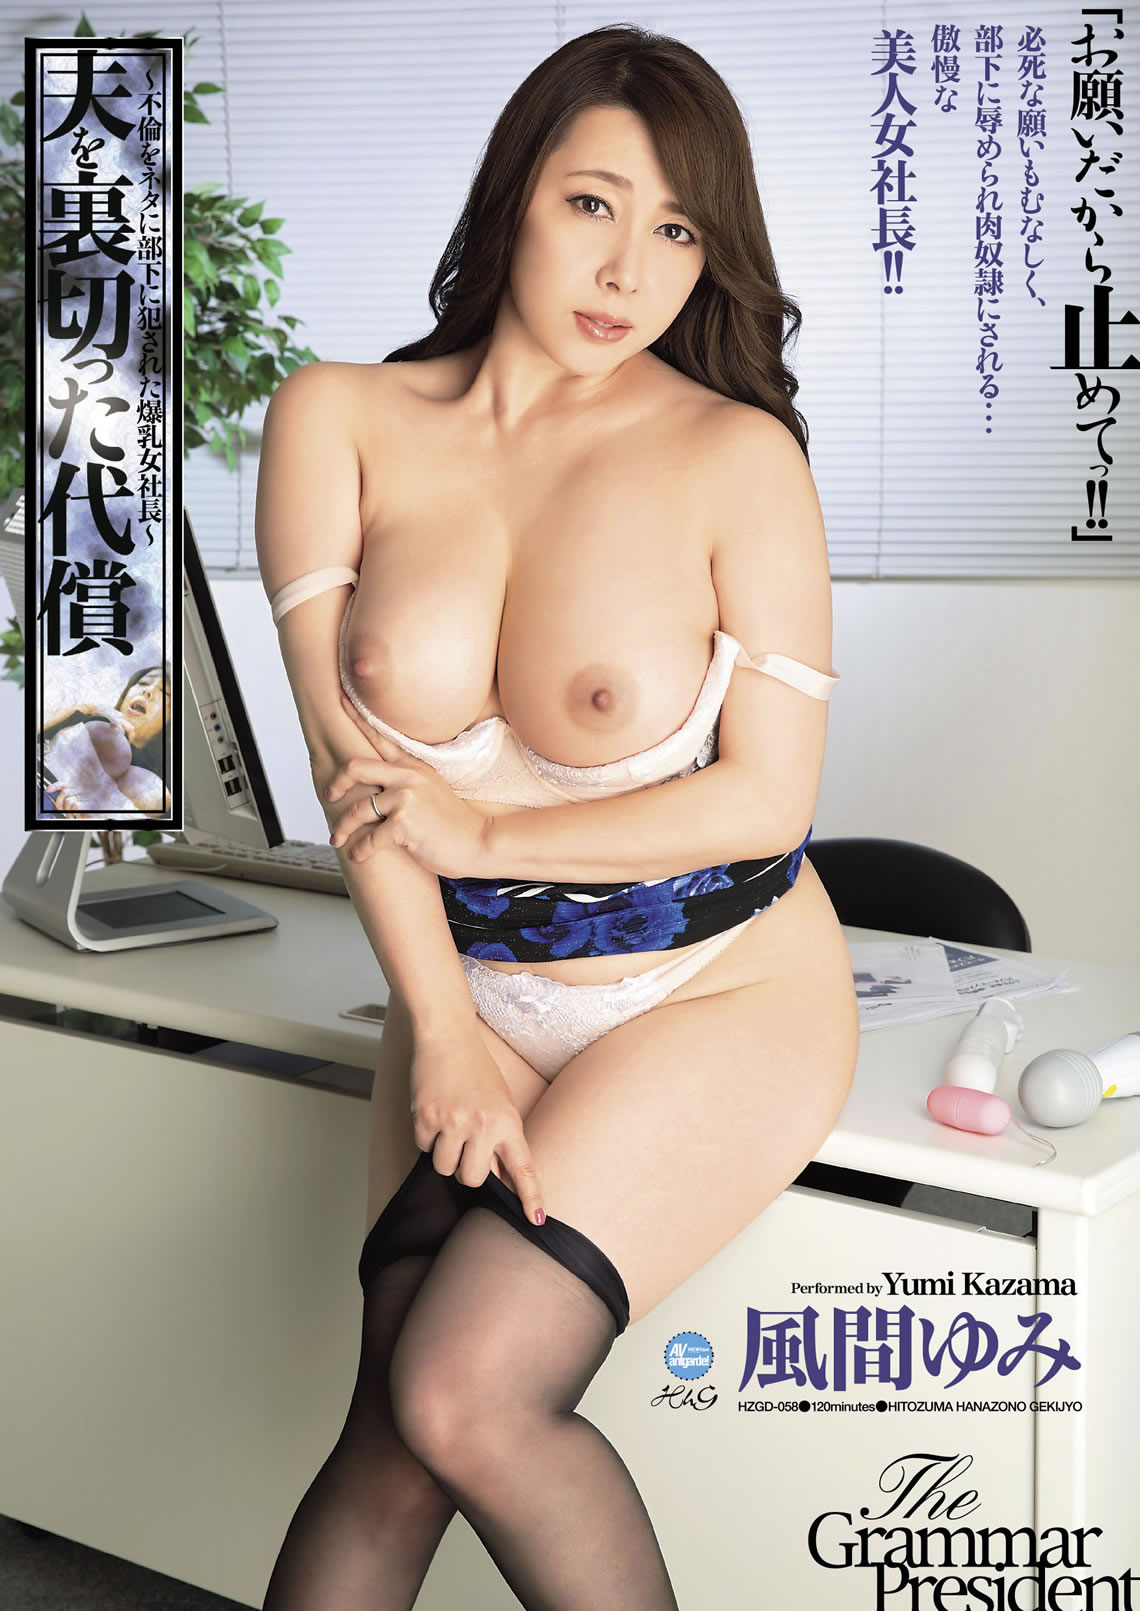 Cost Of Betrayed Her Husband ~Fucked By Her Husband's Subordinate By Threaten By Infidelity, Such A Explosive Large Breasts Female Company President~ Yumi Kazama